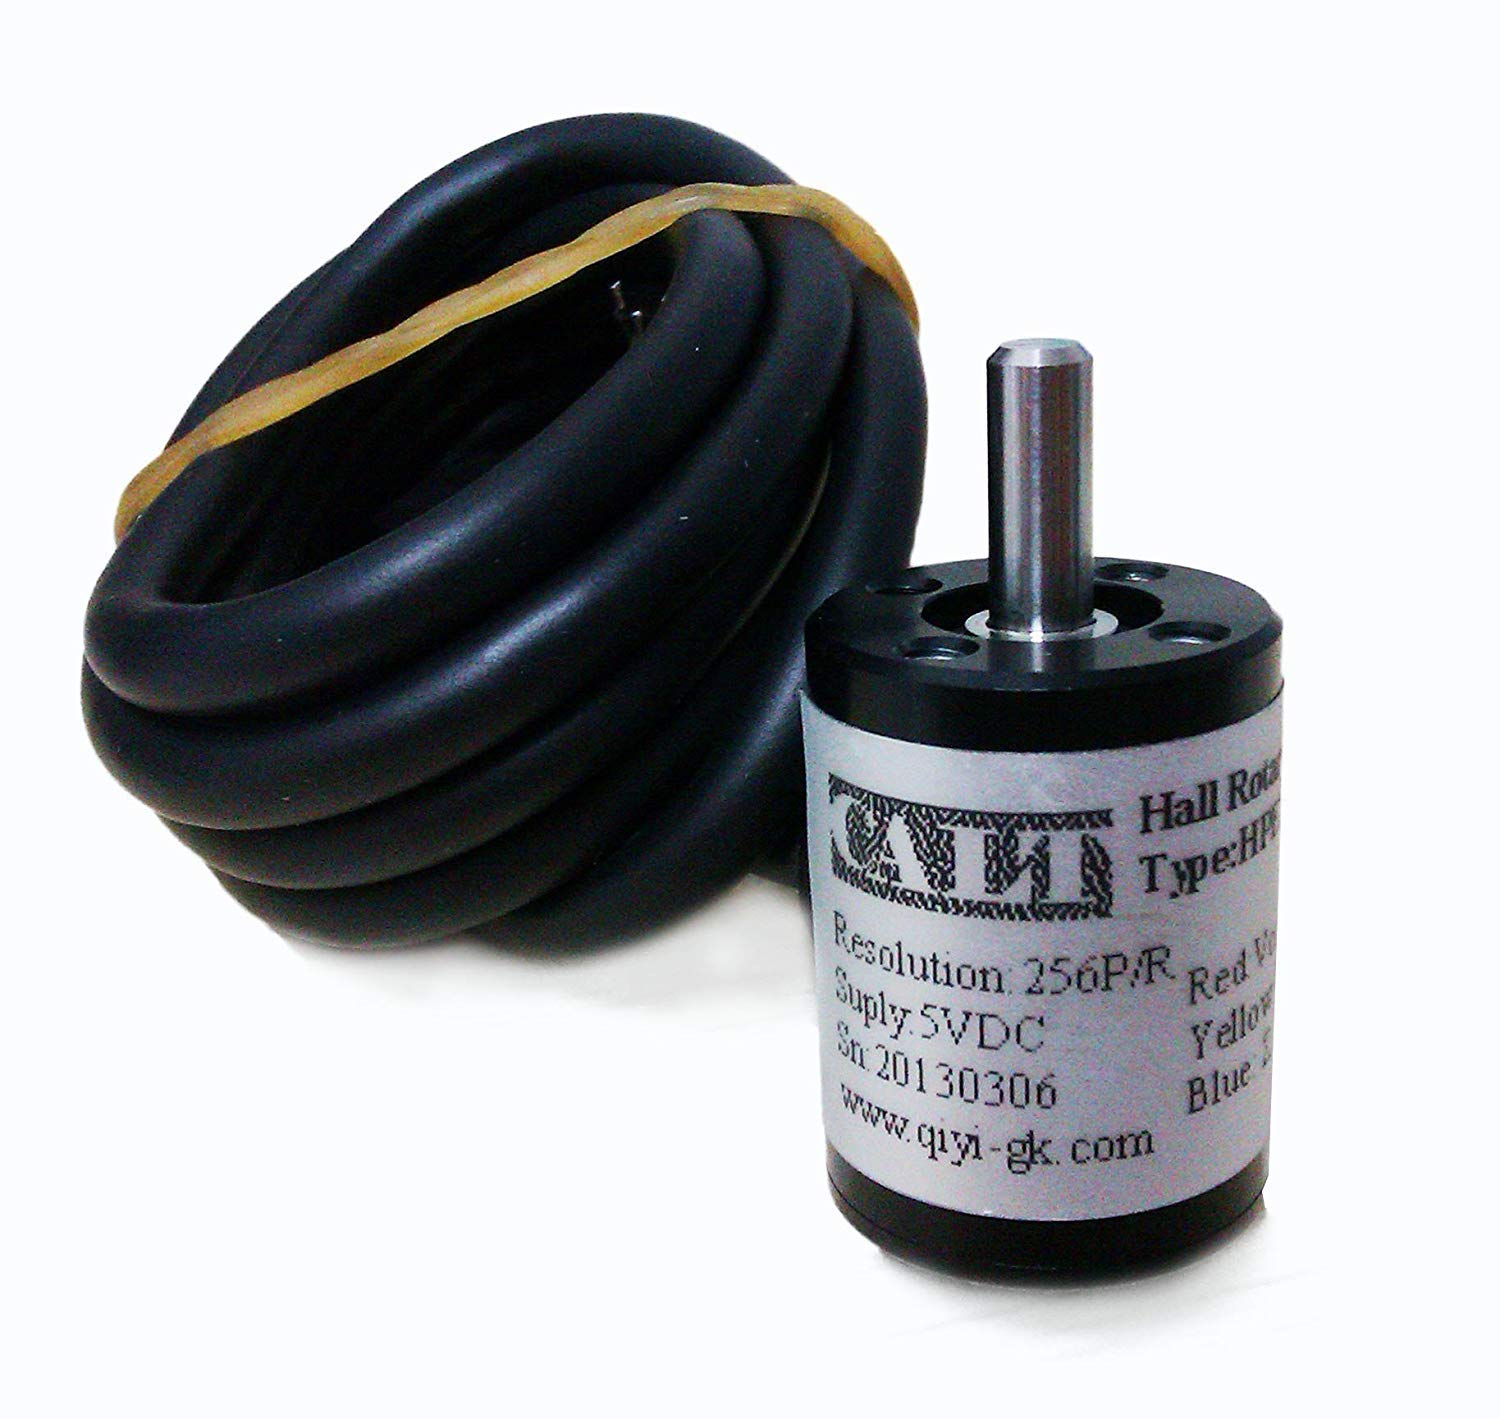 CALT HAE18 14 Bit 16384 Resolution Hall Magnetic Angle Rotary Encoder SSI Absolute Type (5V 14bit) by Calt (Image #1)